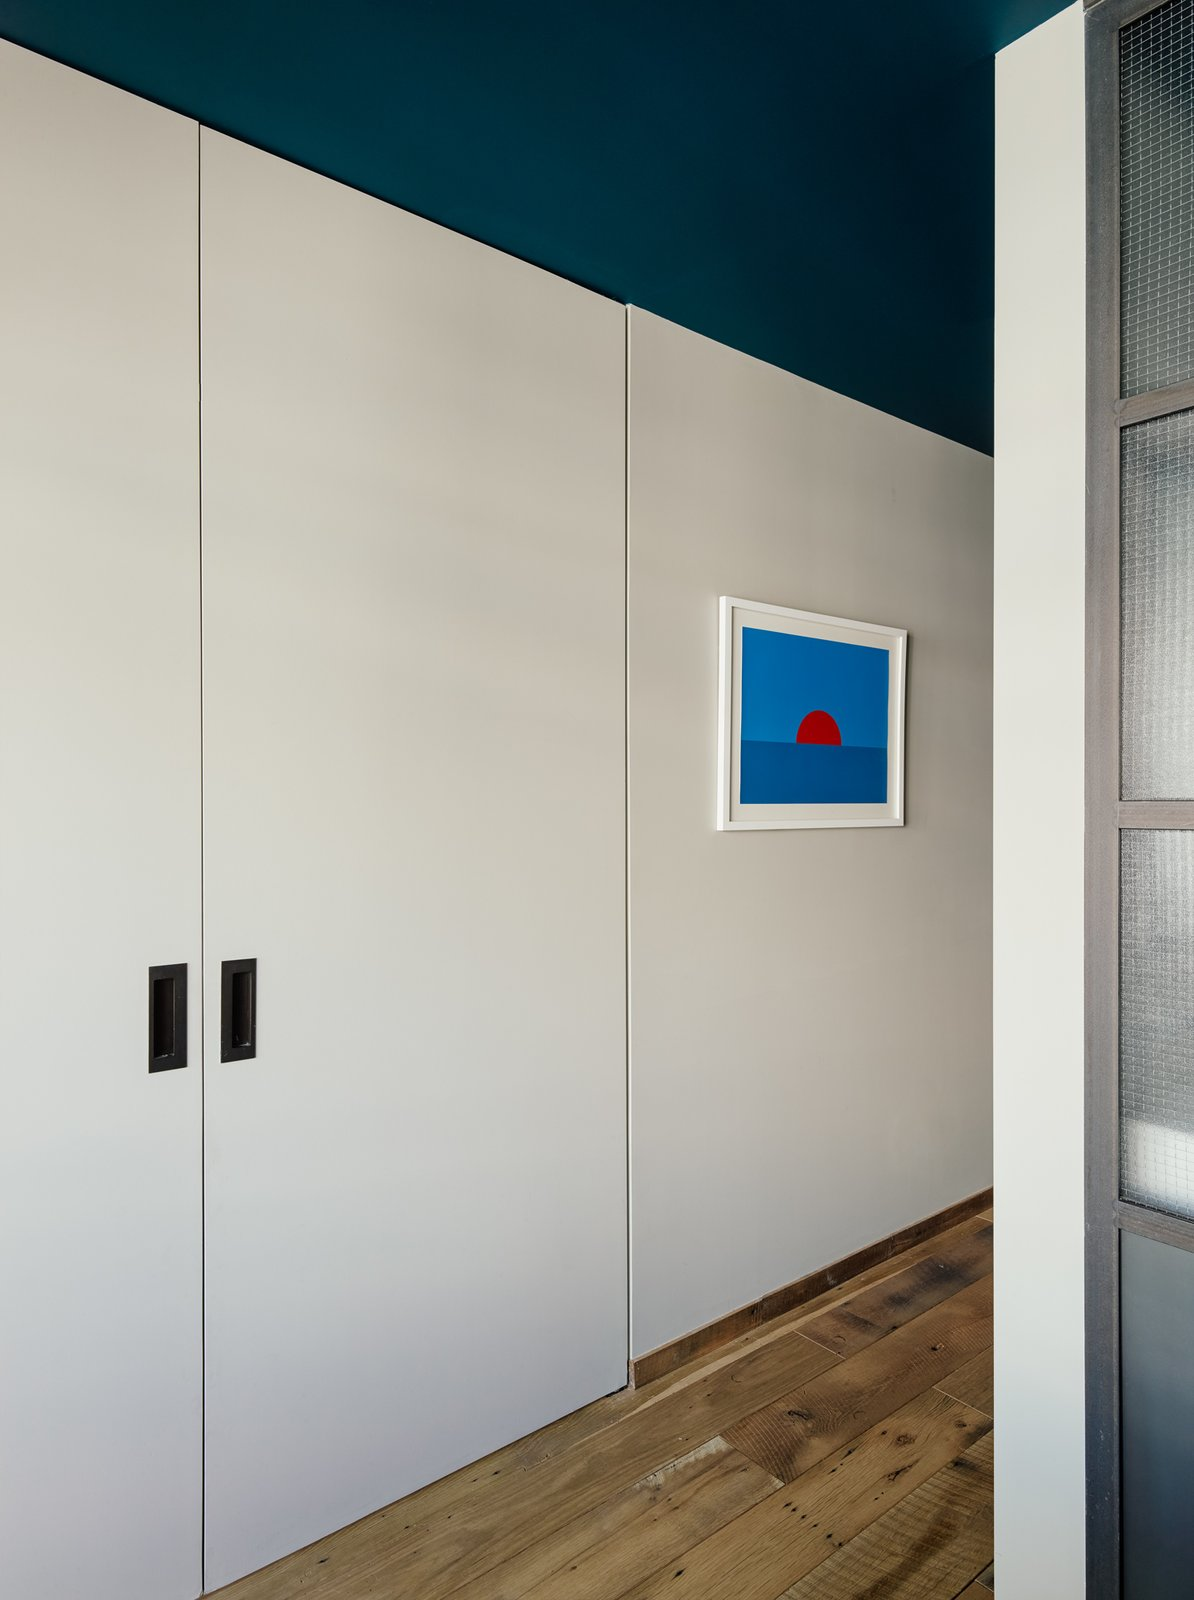 "The custom sliding doors are Zames's favorite detail in the home. ""They are functional, but also manage to balance nice clean modern details without being cold,"" she says."